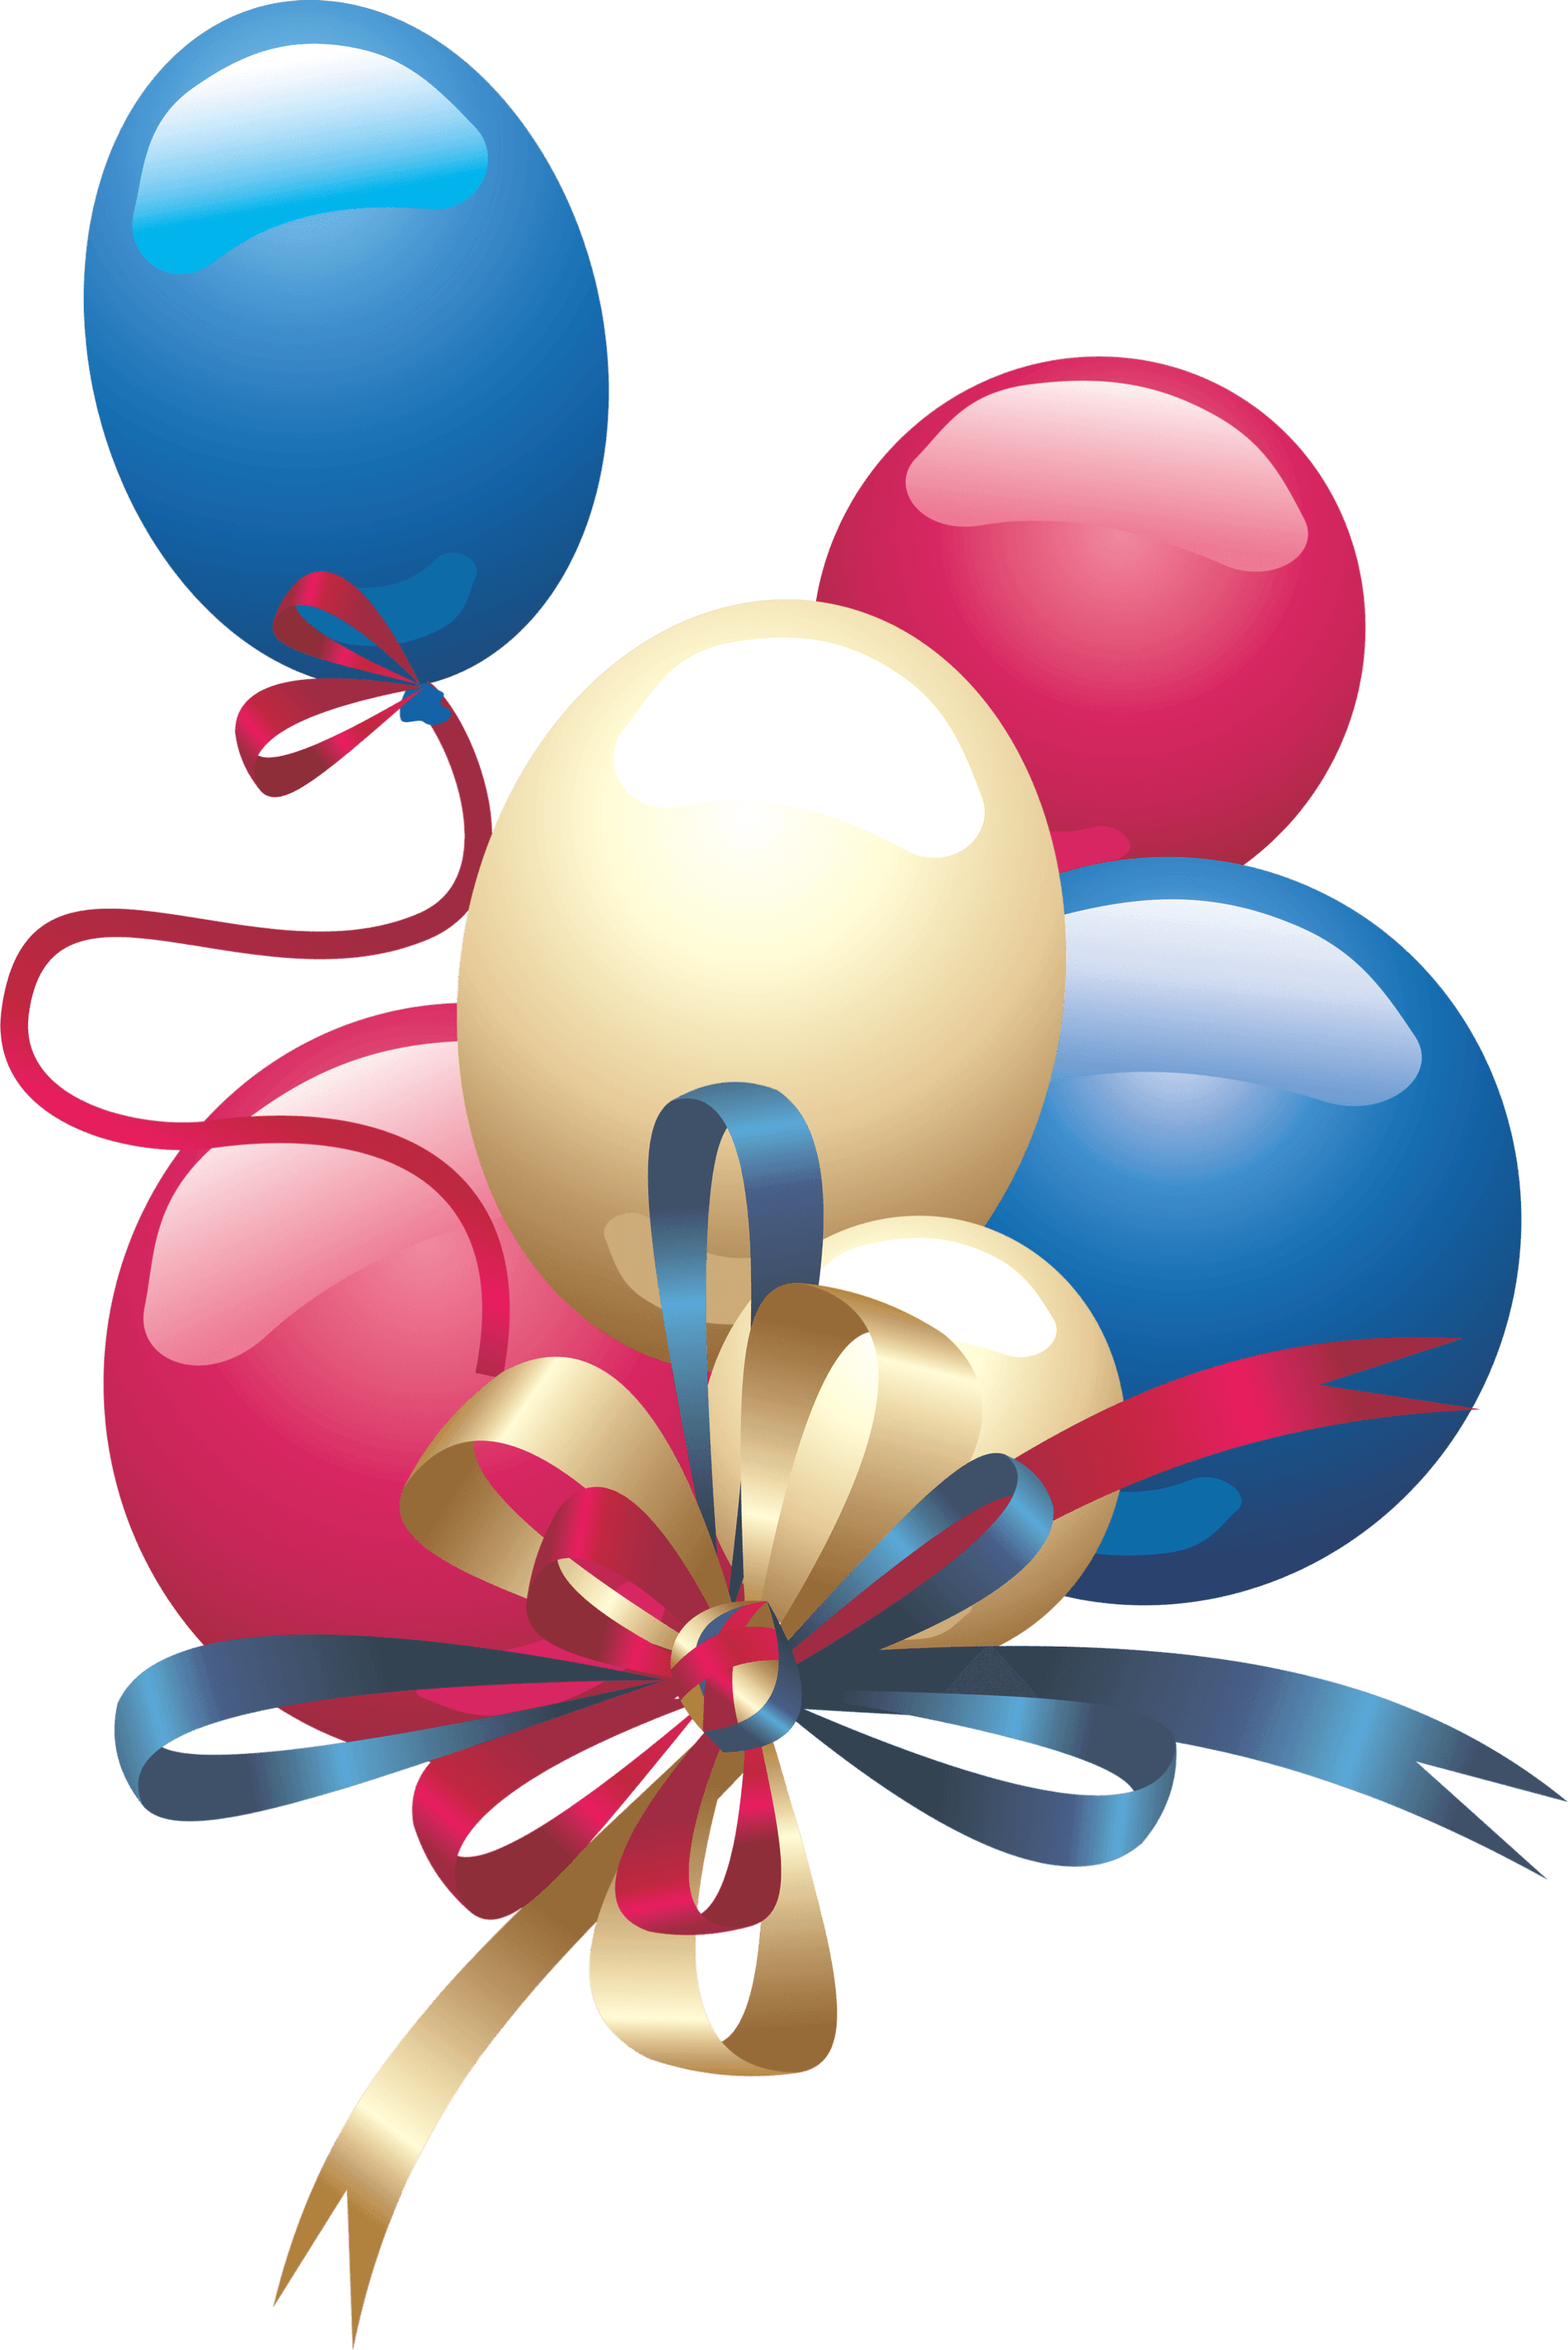 hight resolution of objects balloon